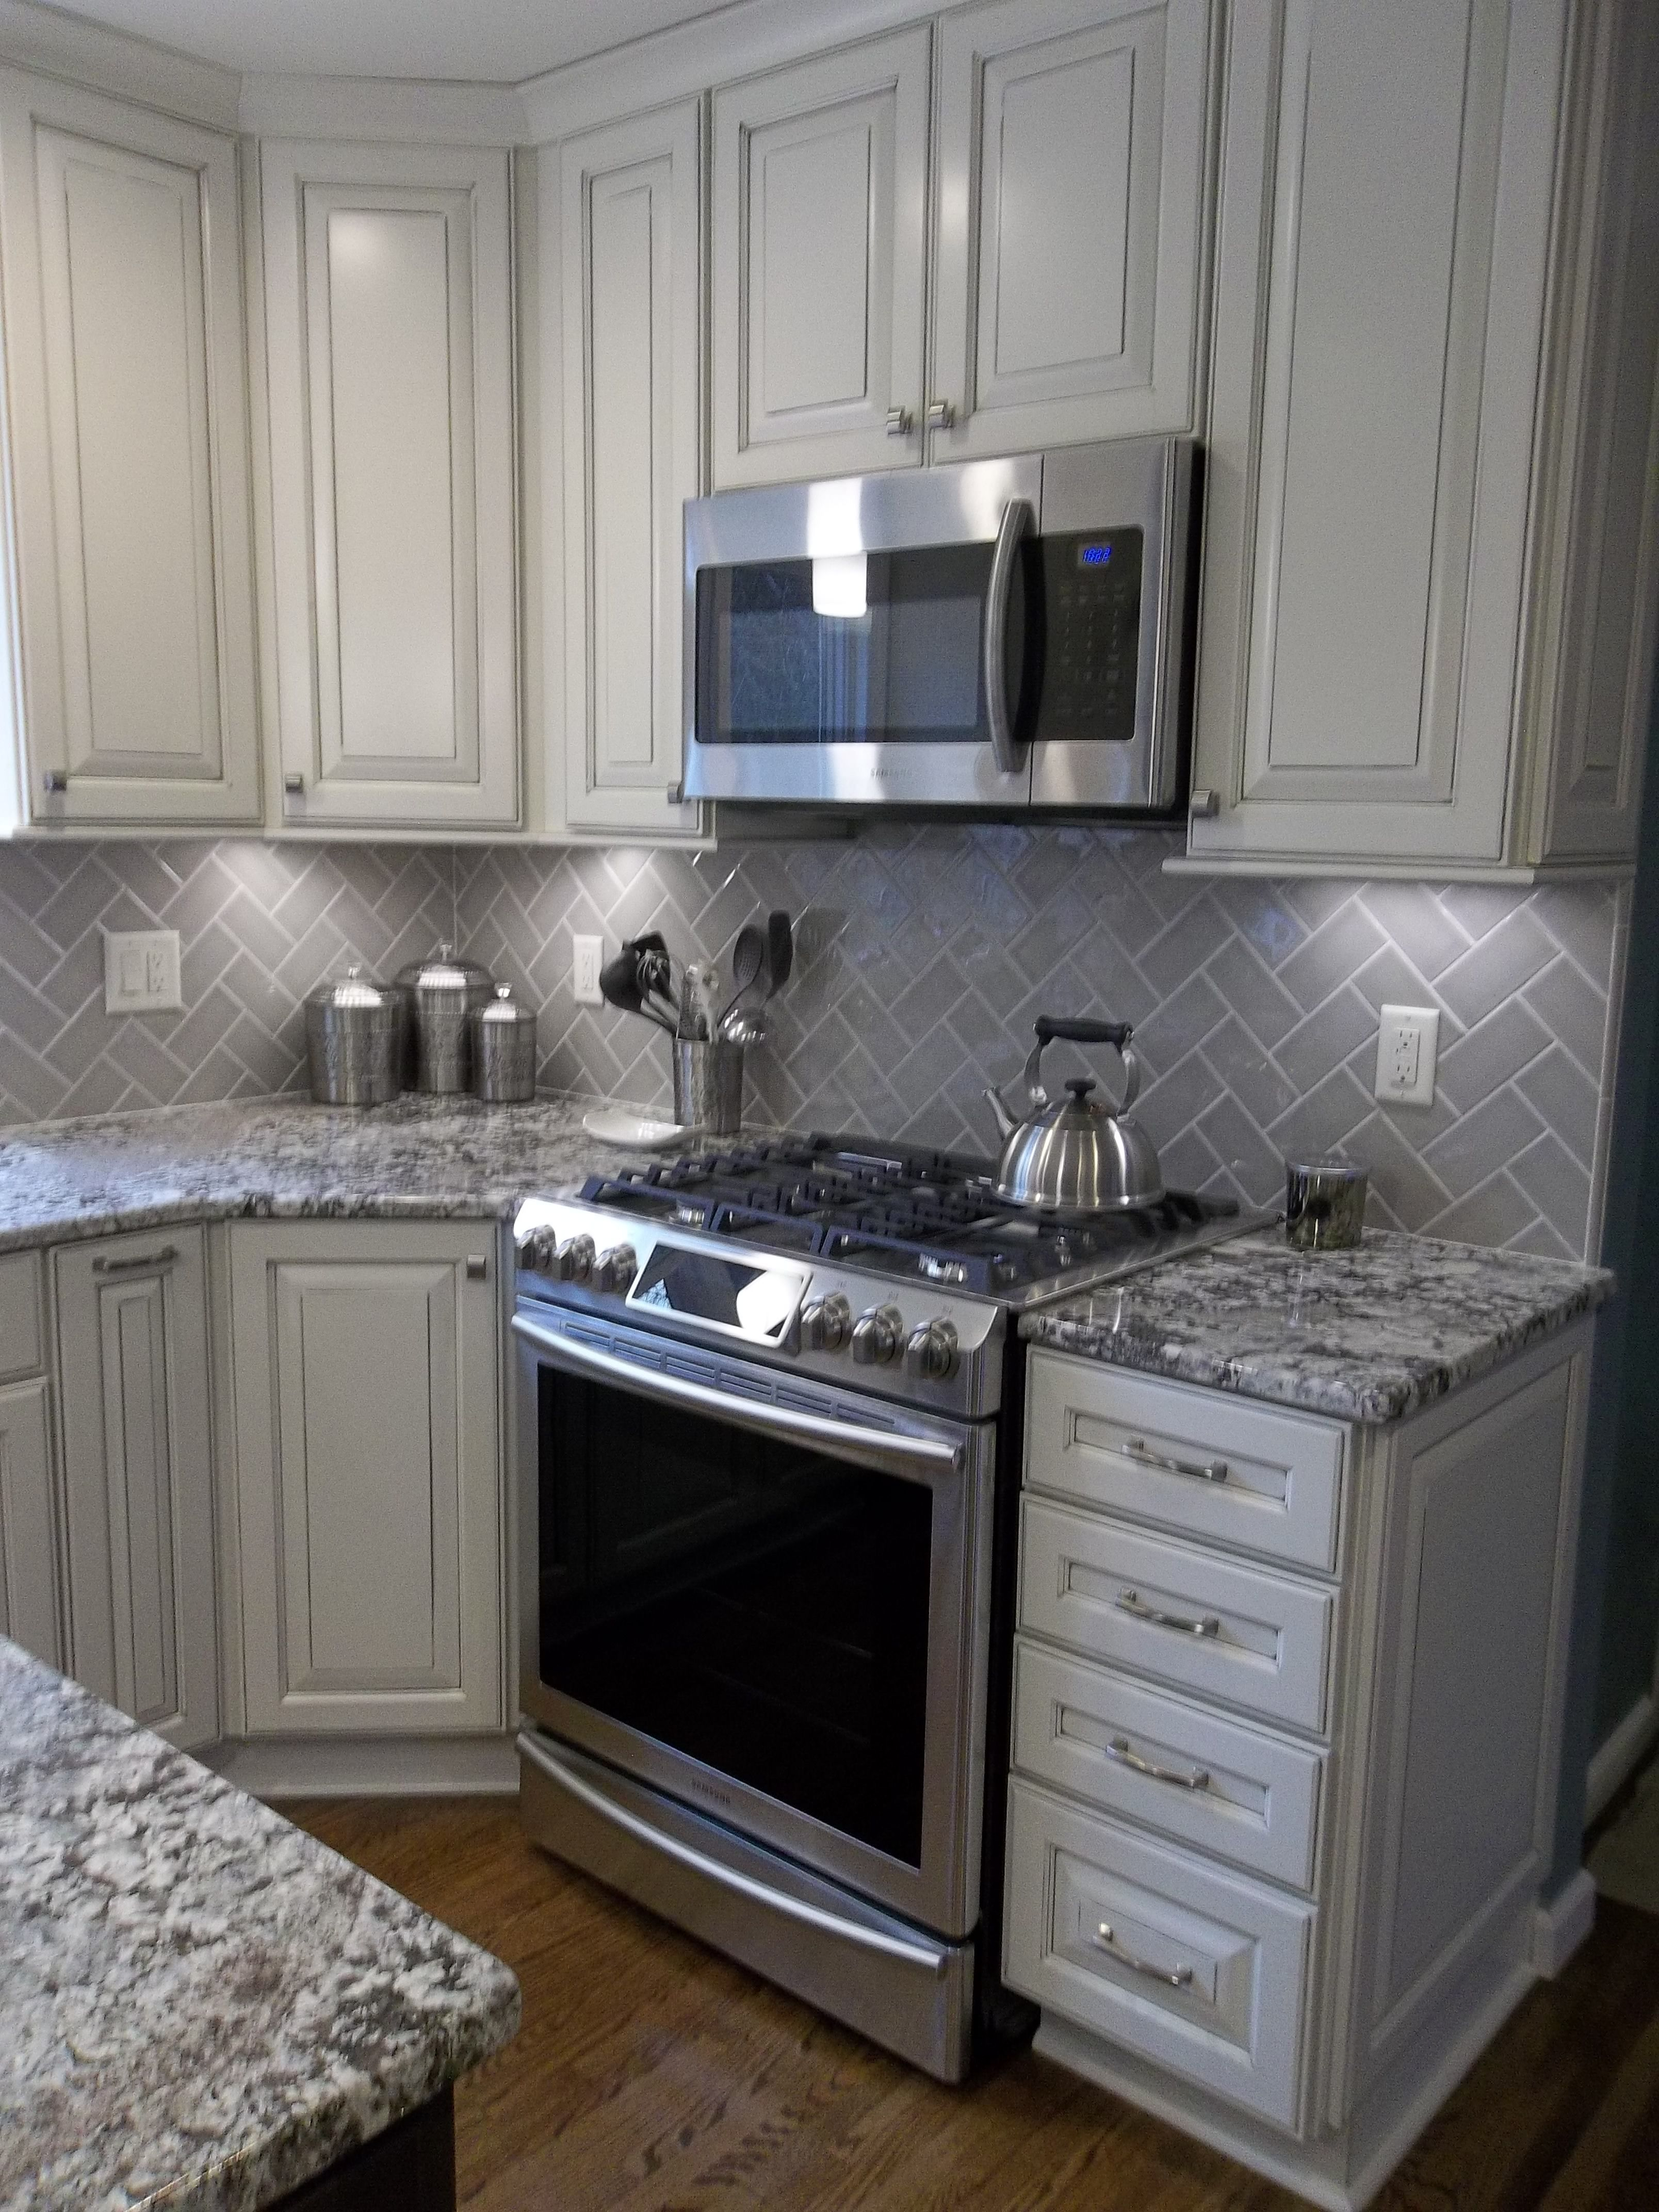 Check out this beautiful kitchen remodel completed by Lowe